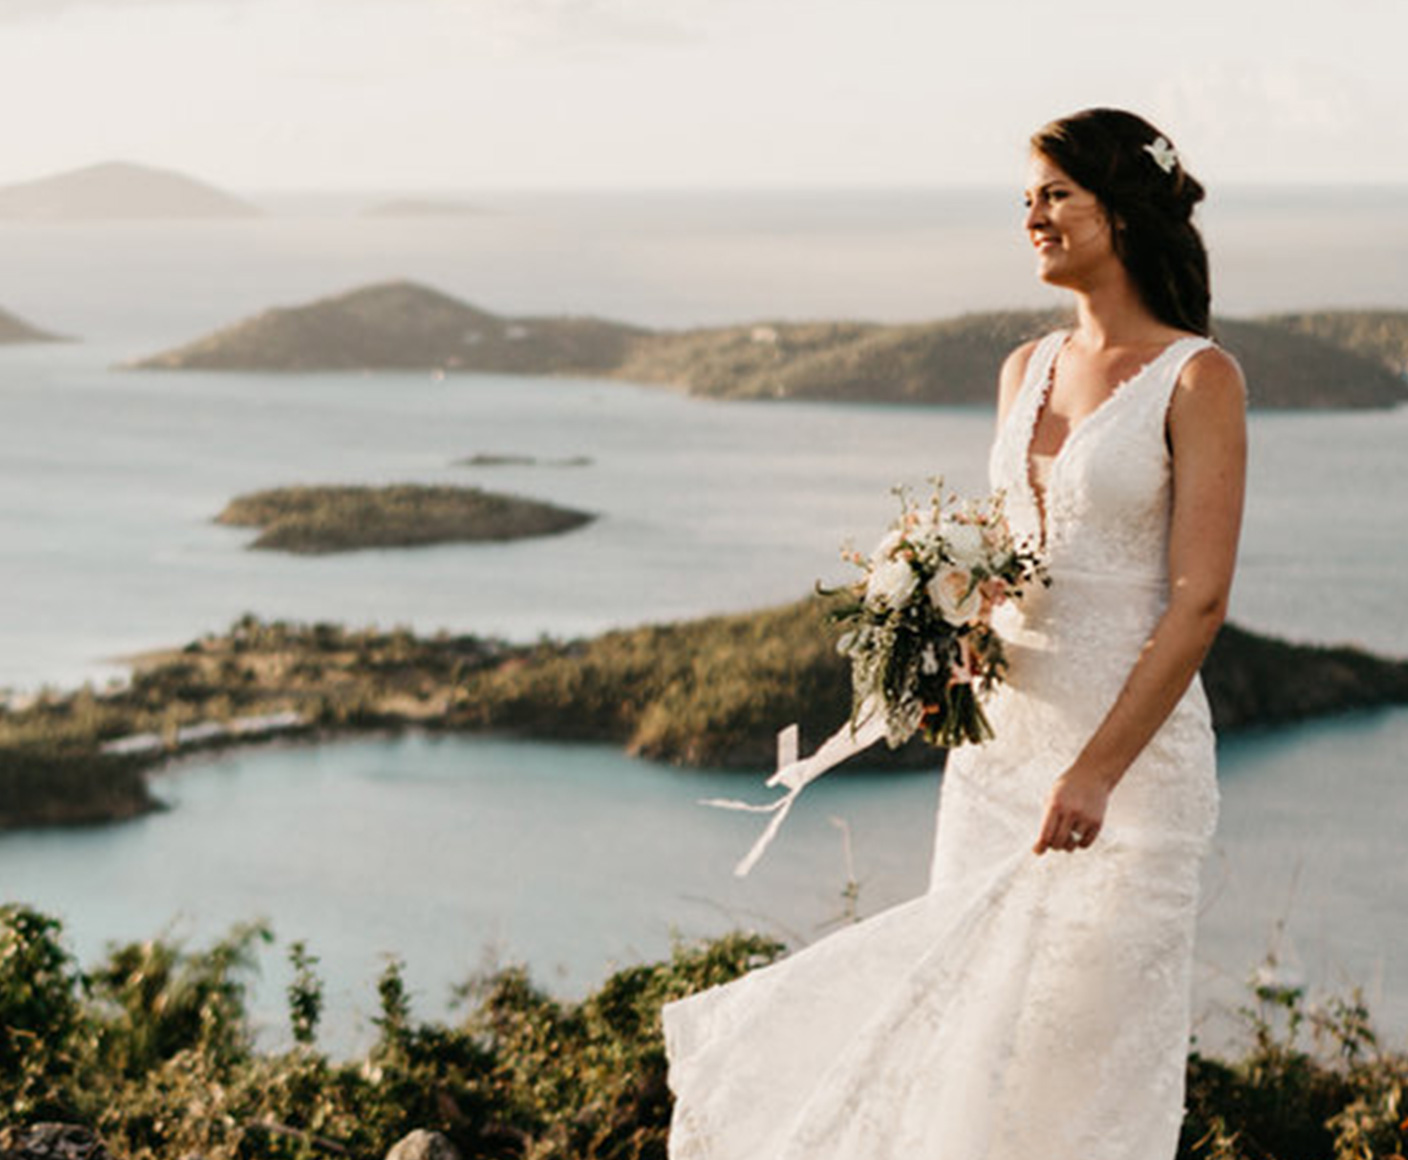 Wedding bride overlooking Cruz Bay, St. John USVI